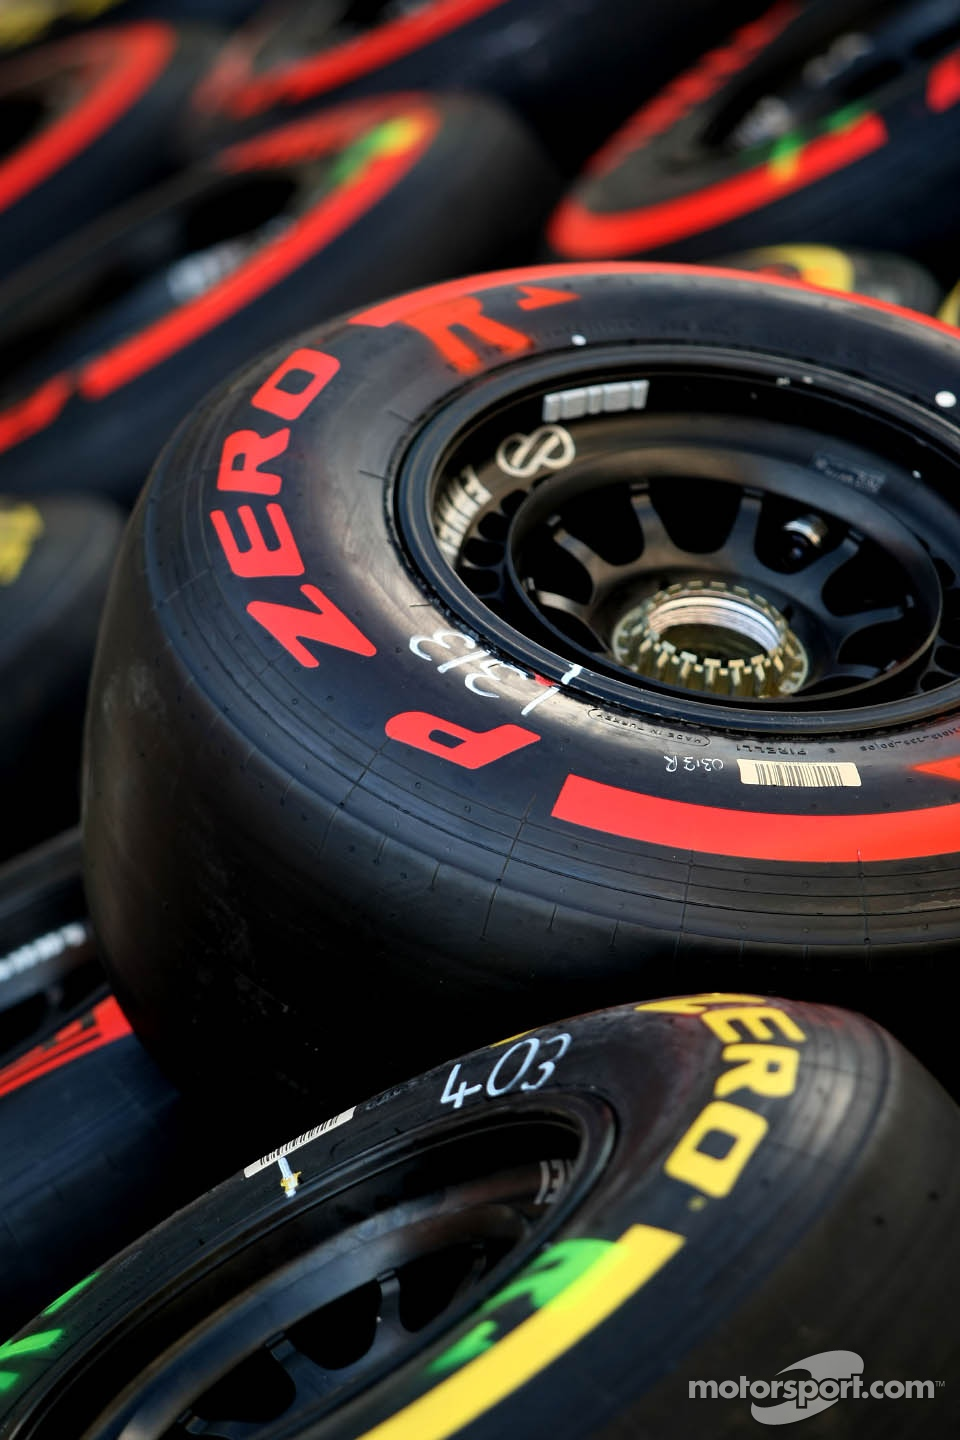 Pirelli tires